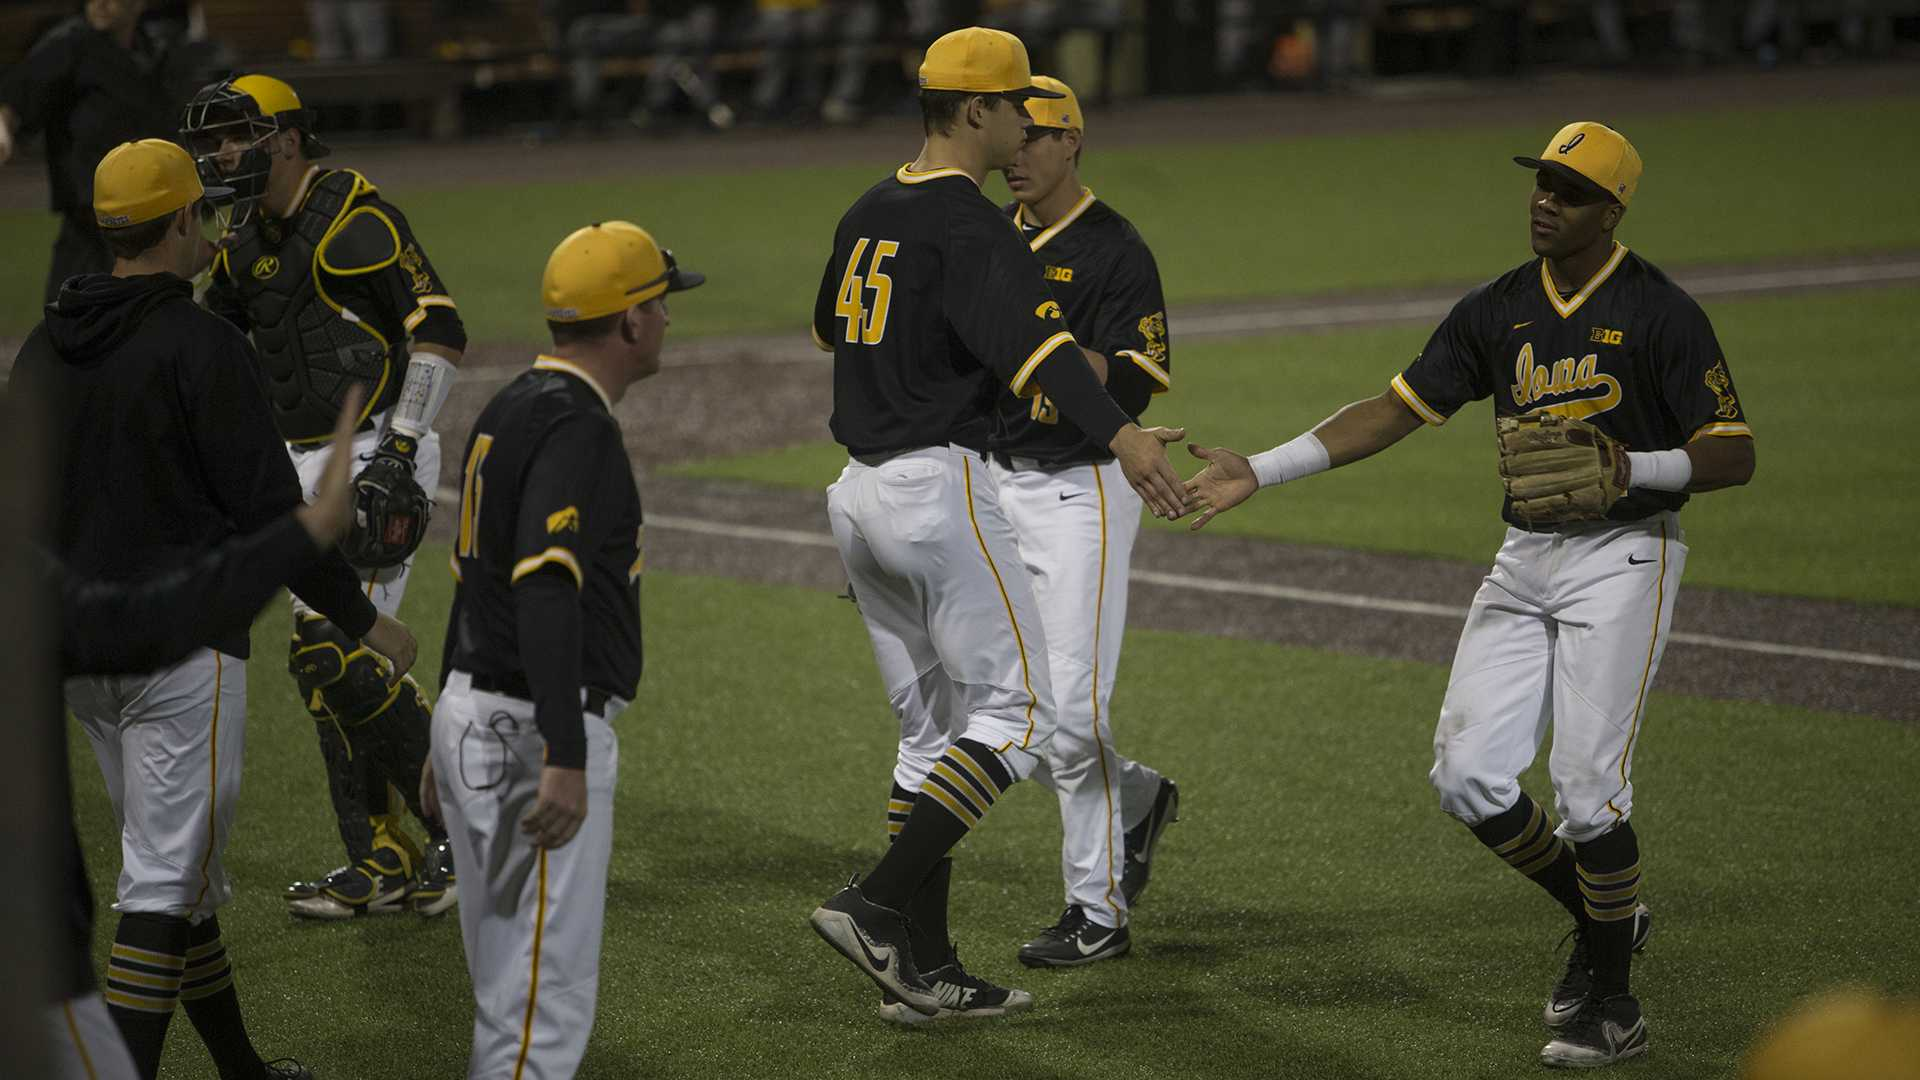 Hawkeyes sophomore Lorenzo Elion and sophomore Kyle Shimp high-five between innings during Men's Baseball at Duane Banks Fields on Wednesday Apr. 25, 2018. The Hawkeyes defeated the Panthers 12-4. (Katie Goodale/The Daily Iowan)